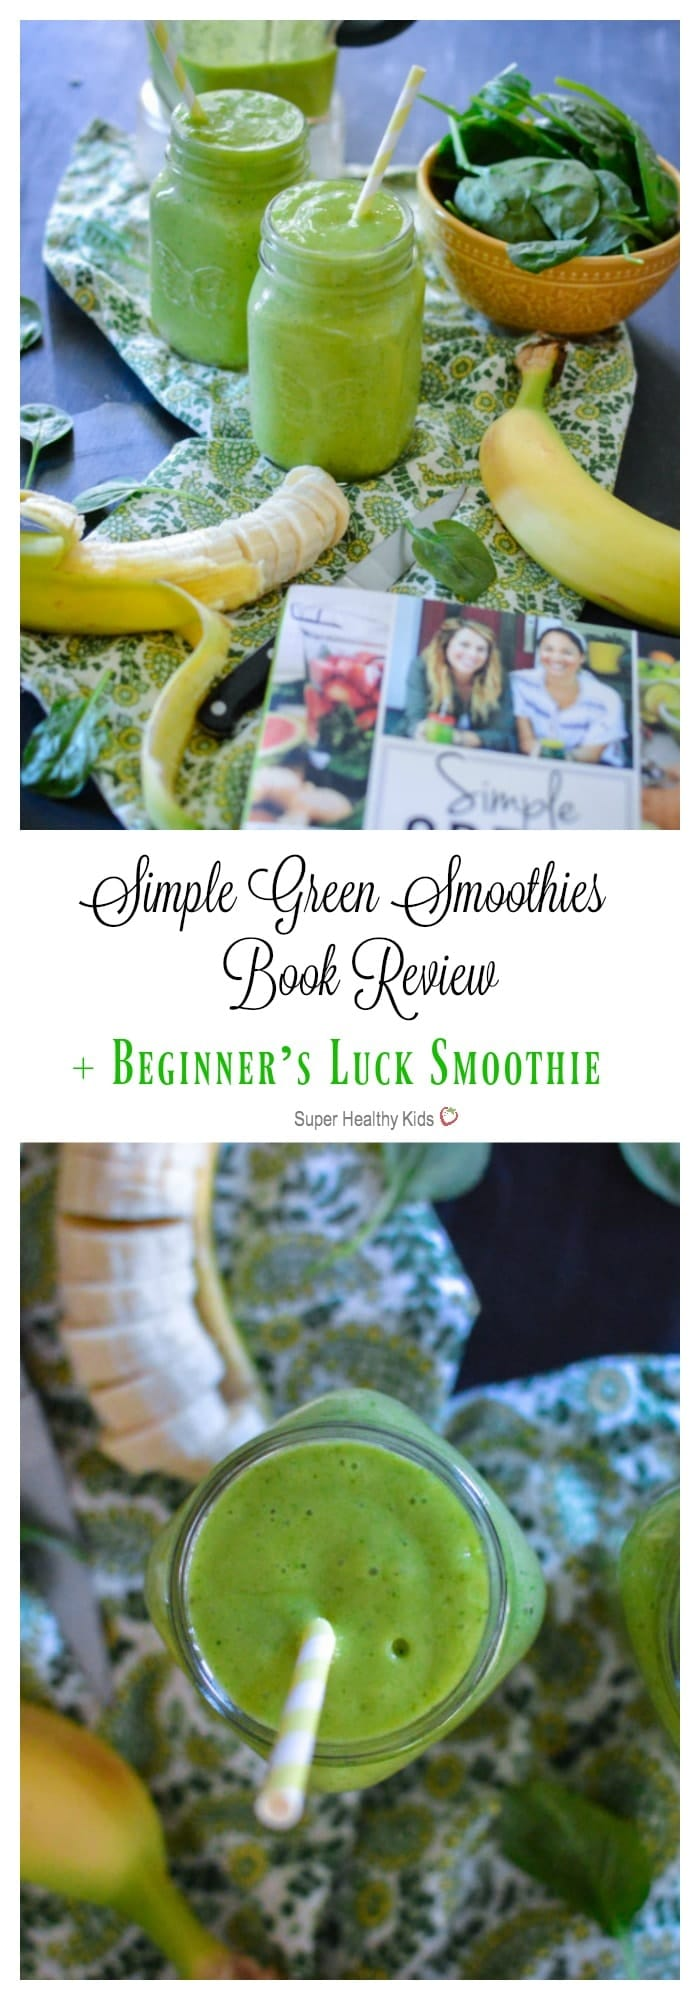 Simple Green Smoothies Book Review + Beginner's Luck Smoothie. If you or your kids have been hesitant to drink green smoothies, this Beginner's Luck Smoothie is the key to your smoothie heart. Sweet, cold, and delicious - it is the ticket to starting your green smoothie habit! http://www.superhealthykids.com/simple-green-smoothies-book-review-beginners-luck-smoothie/